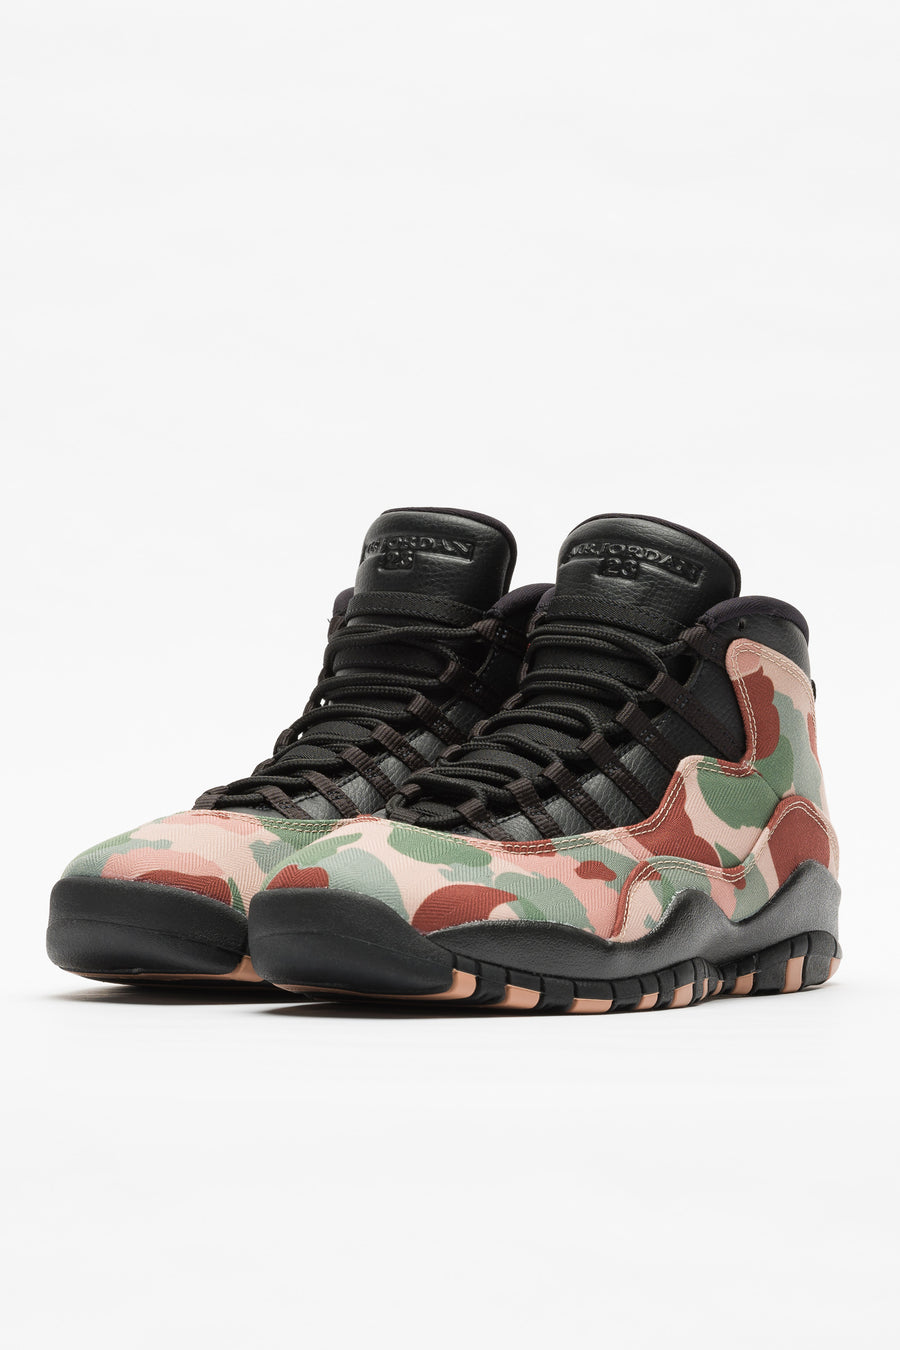 Jordan Air Jordan 10 Retro in Desert/Black - Notre